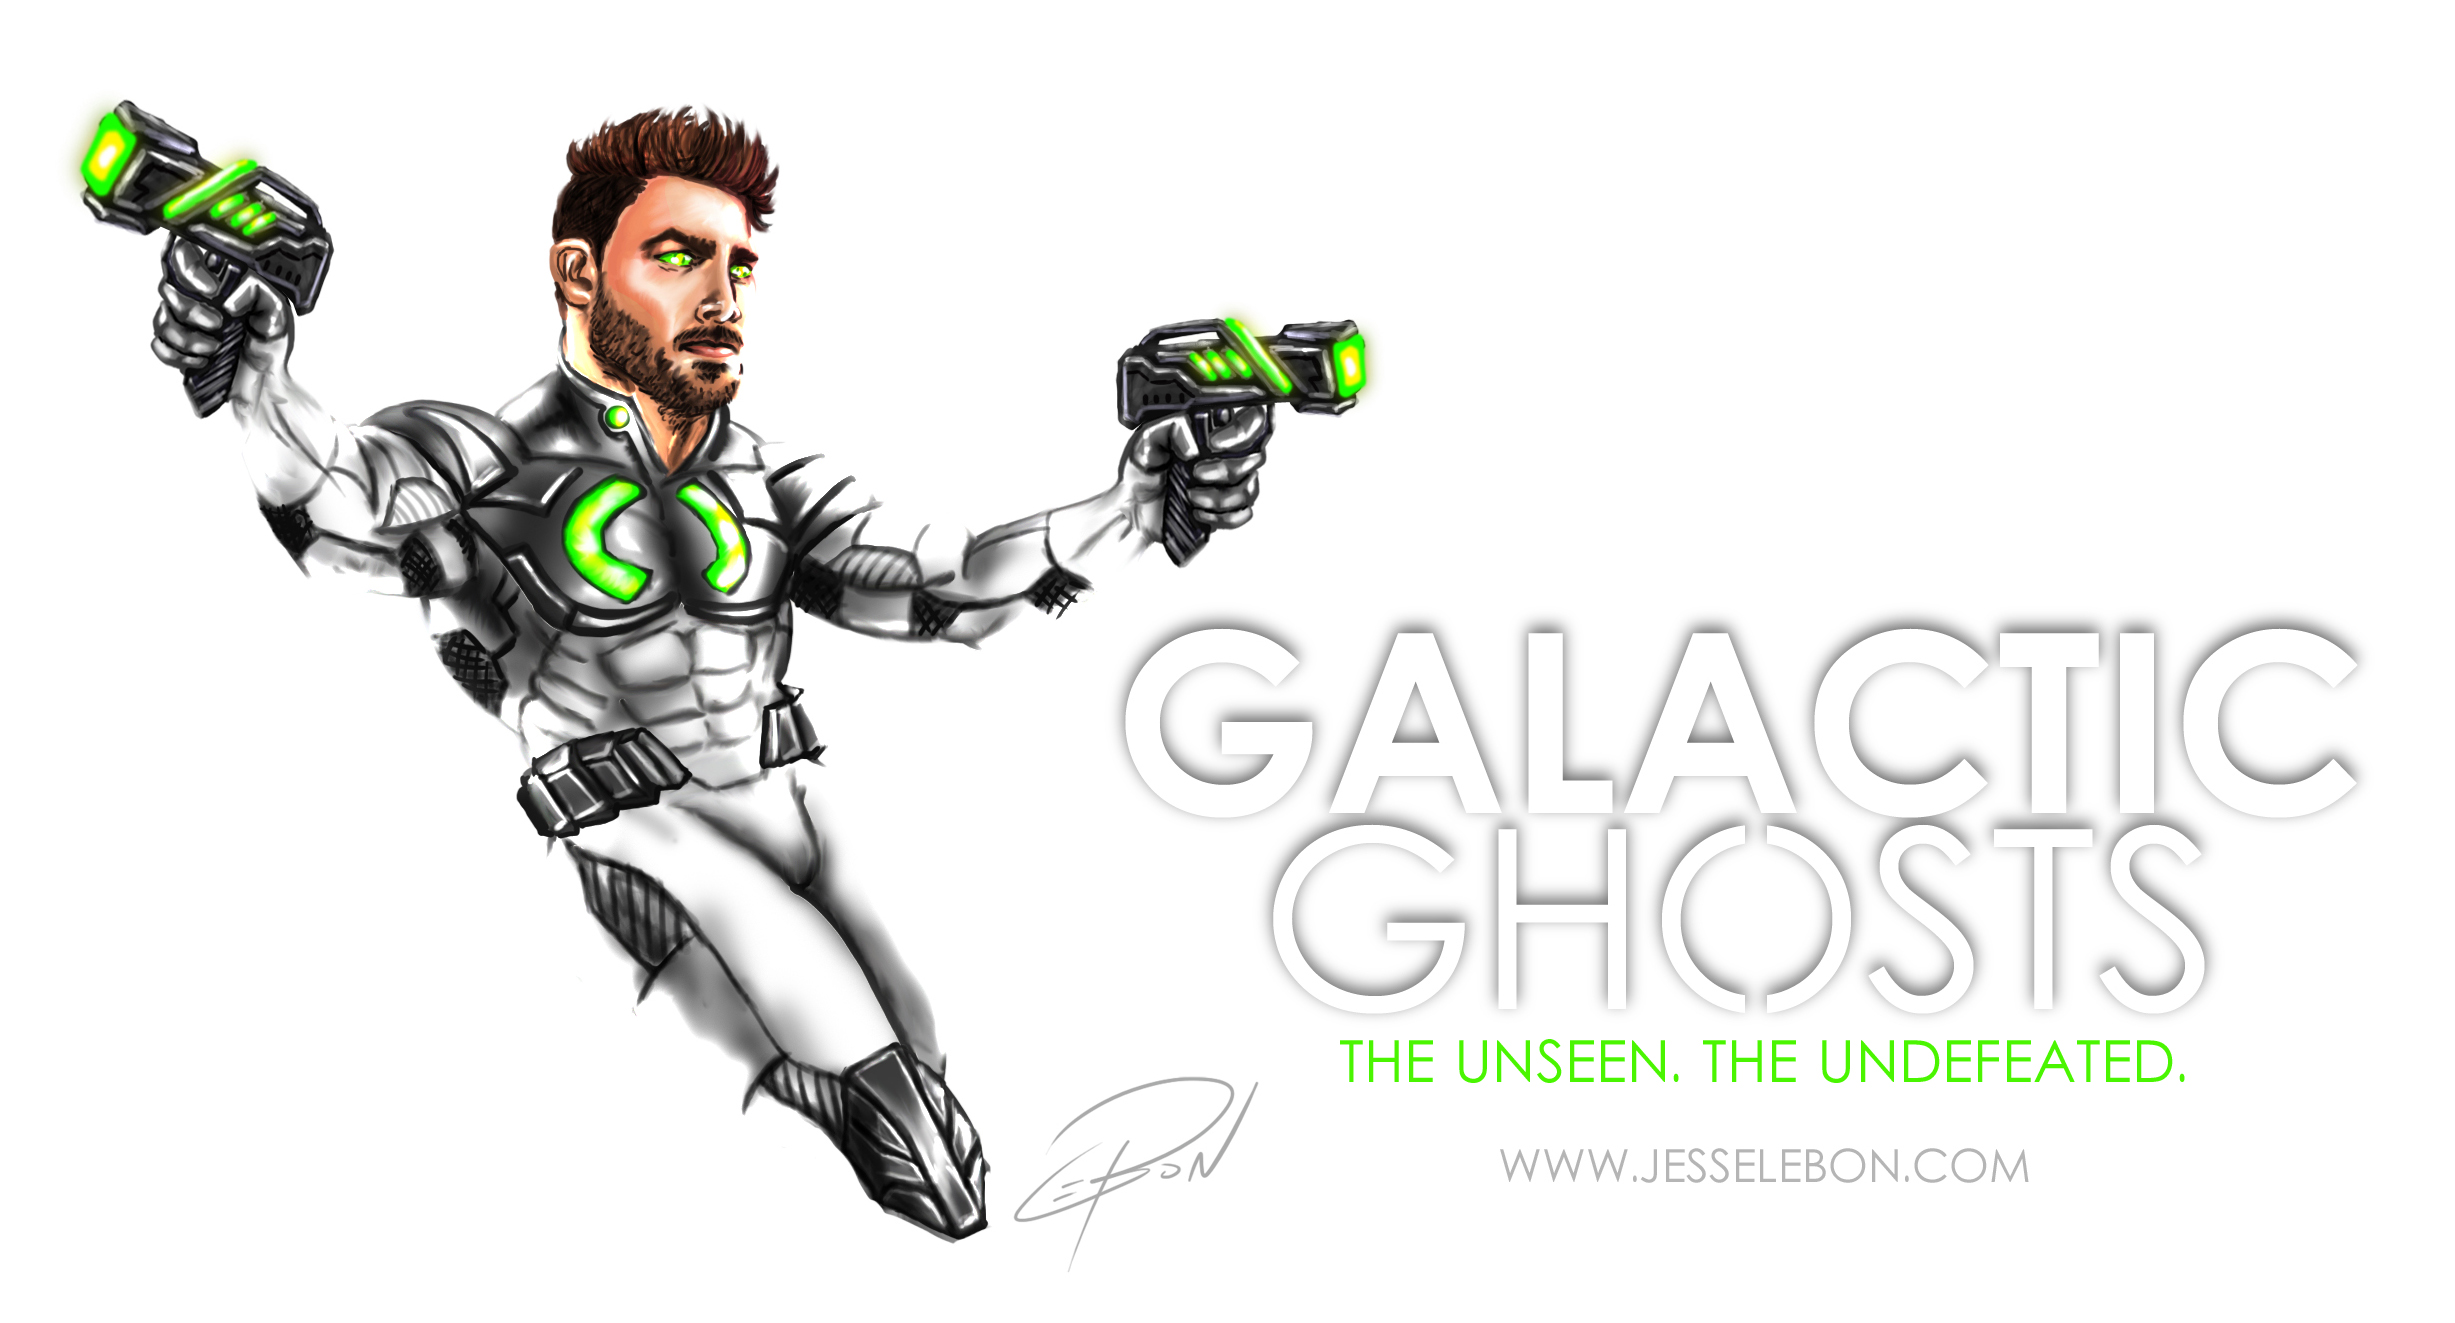 Galactic Ghosts: Leandro